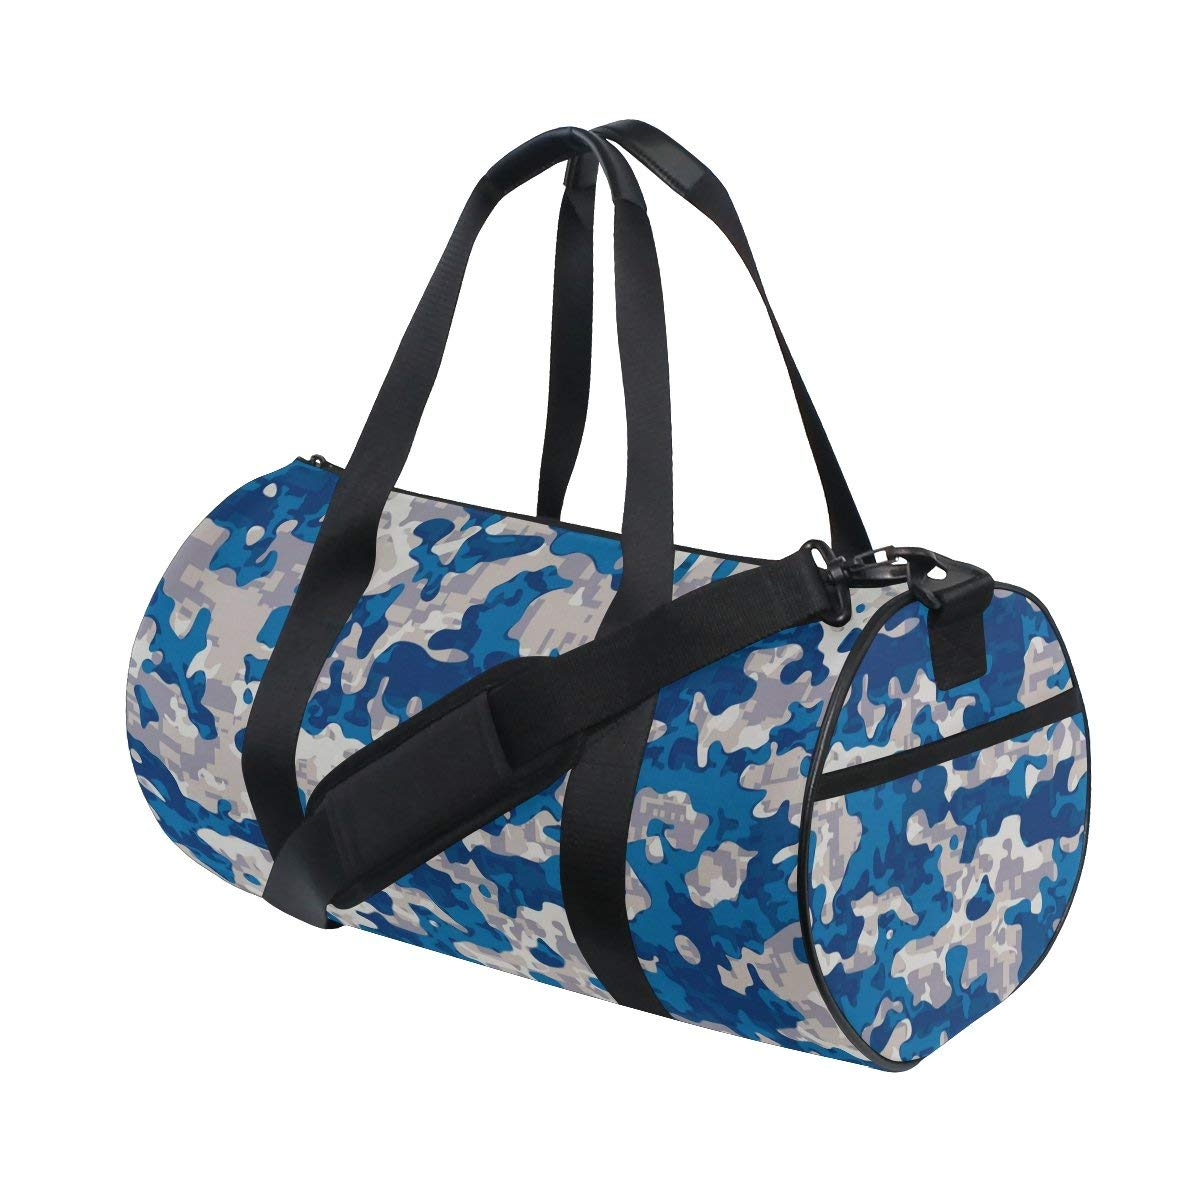 d64e11476598 Get Quotations · Naanle Modern Blue Camouflage Pattern Military Texture Camo  Gym bag Sports Travel Duffle Bags for Men